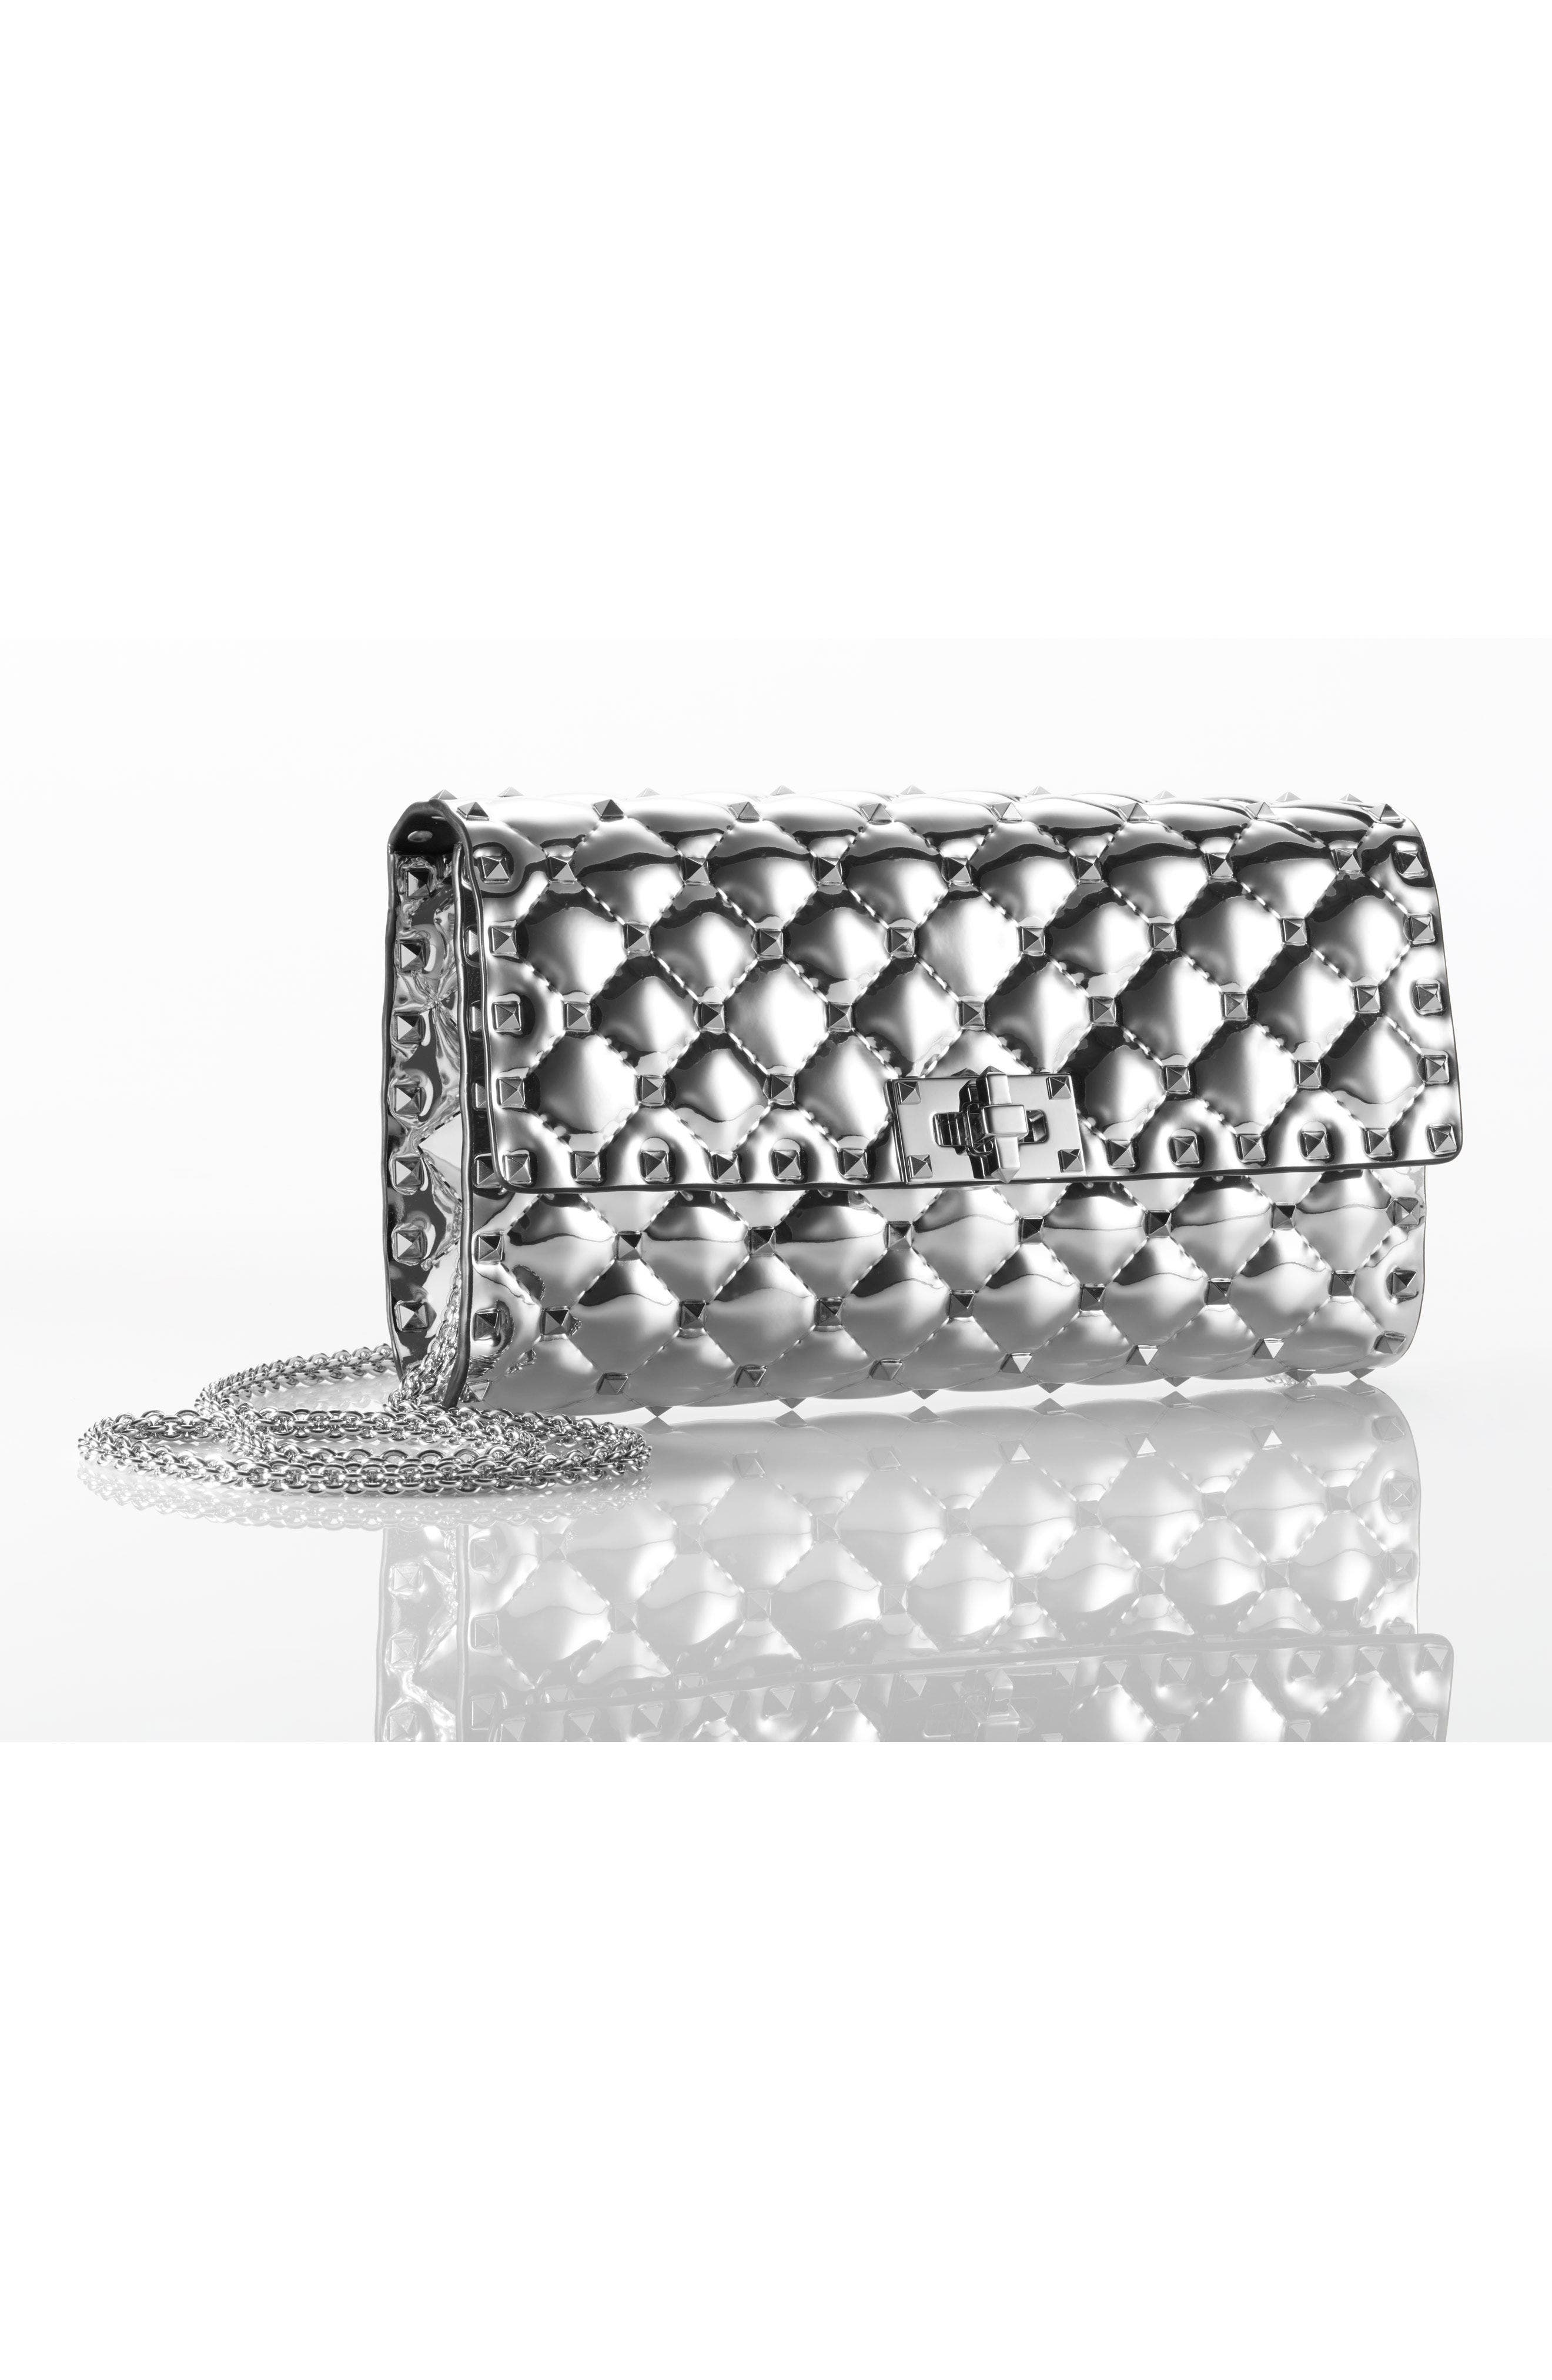 VALENTINO GARAVANI,                             Specchio Rockstud Spike Quilted Leather Clutch,                             Alternate thumbnail 7, color,                             040